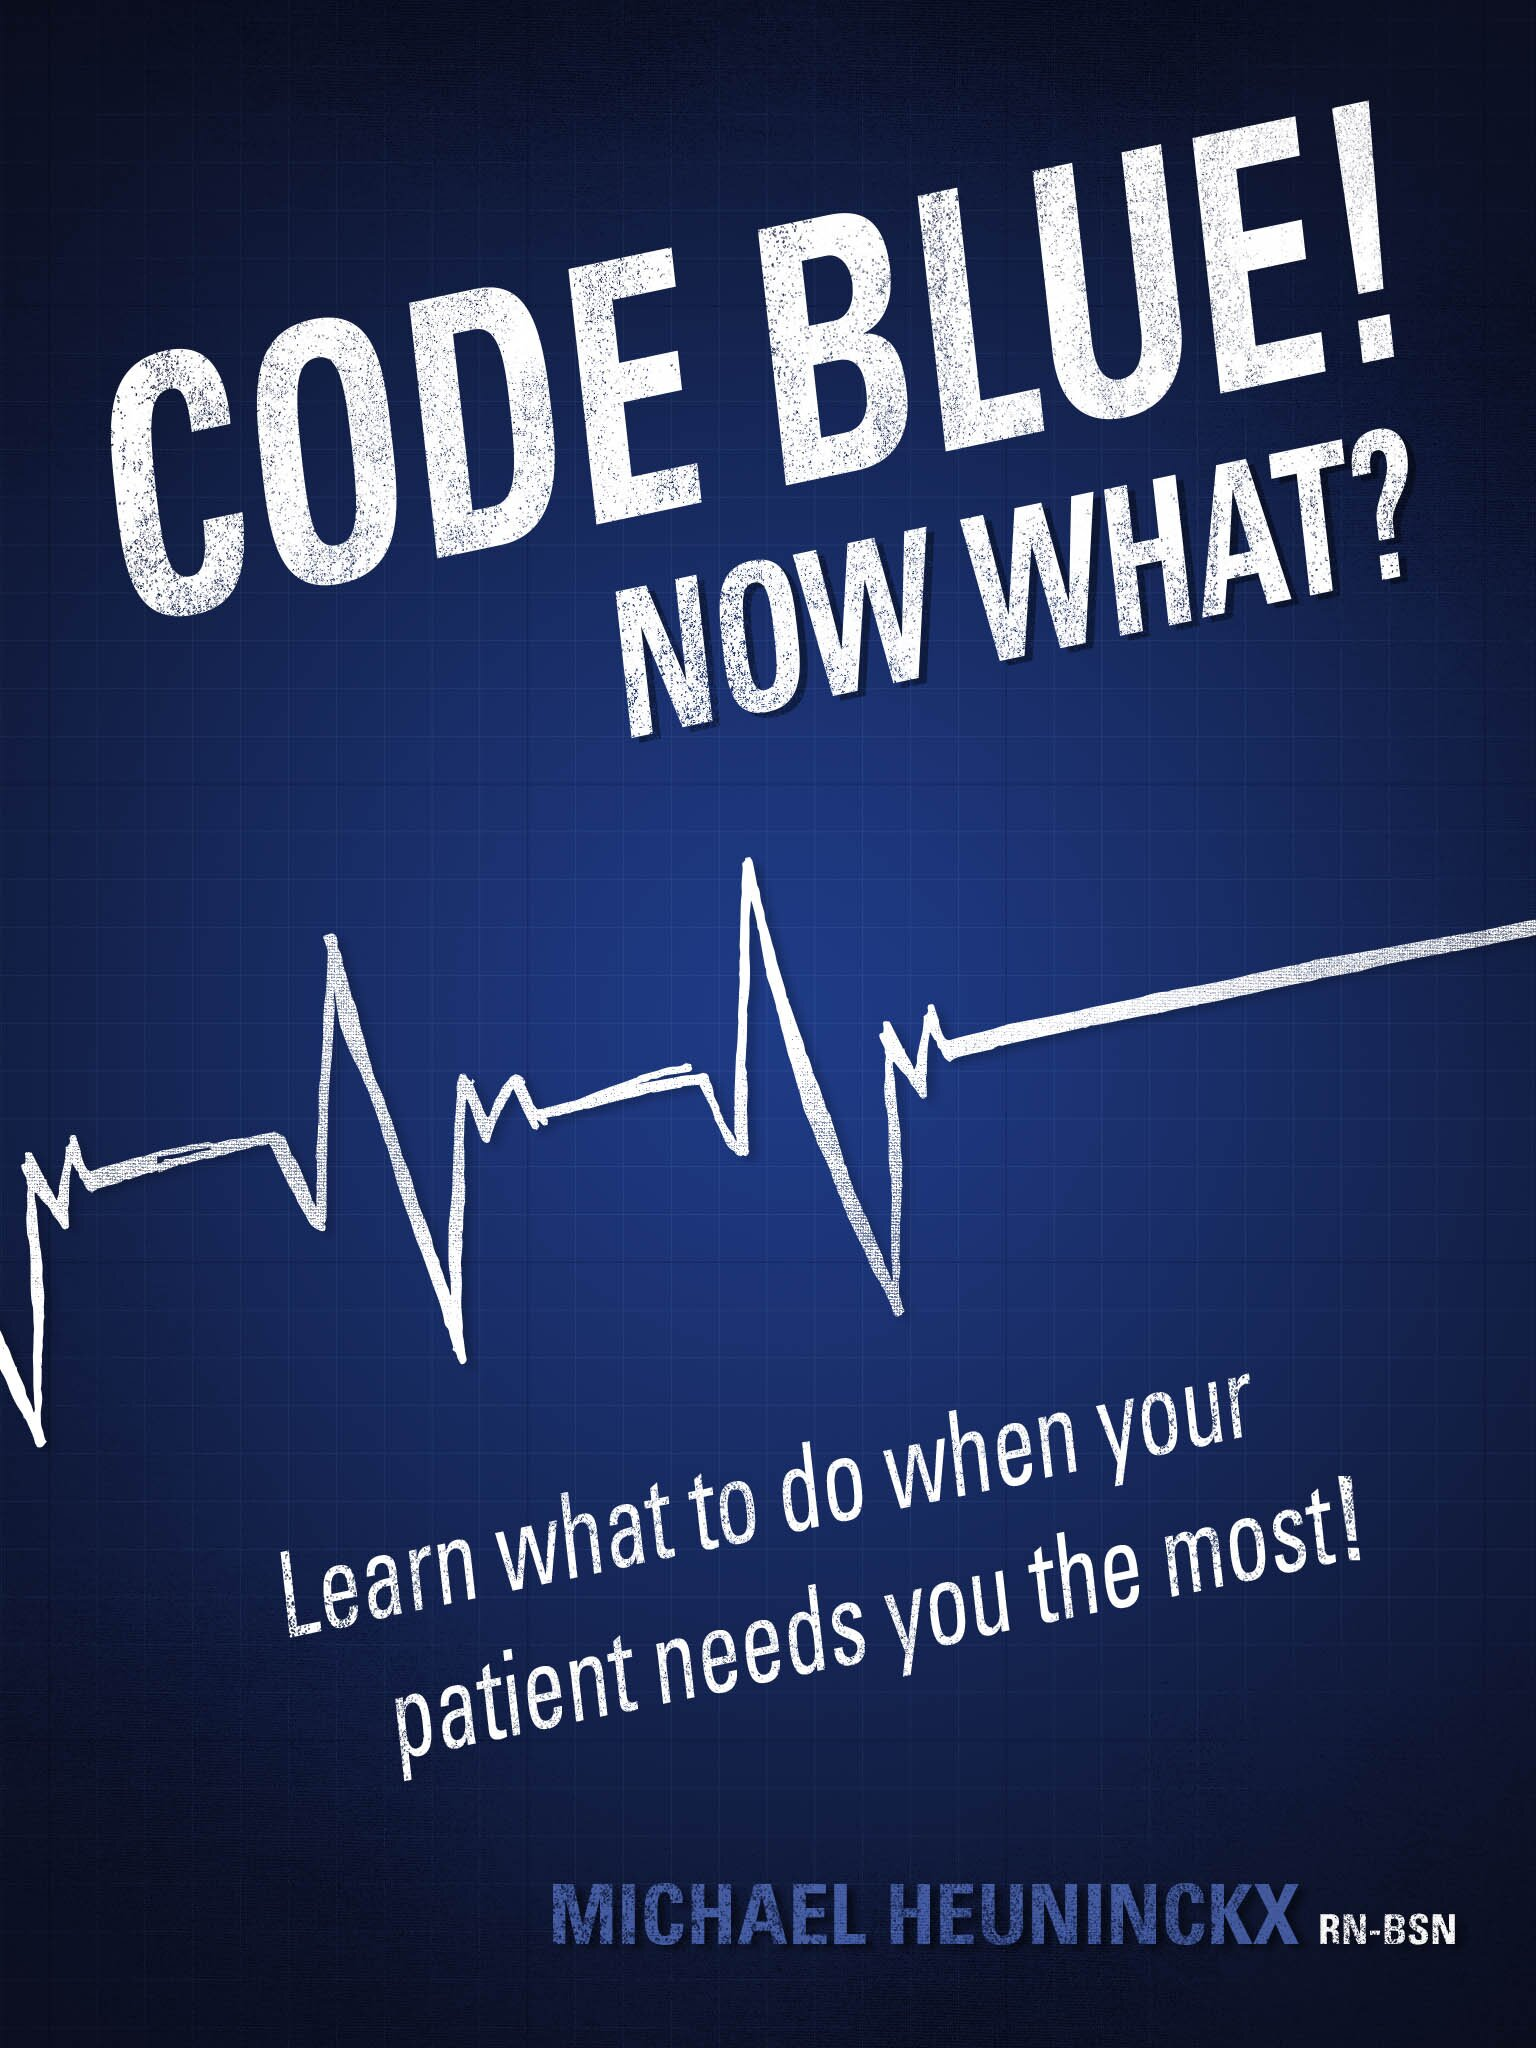 code blue now what codebluenowwhat twitter